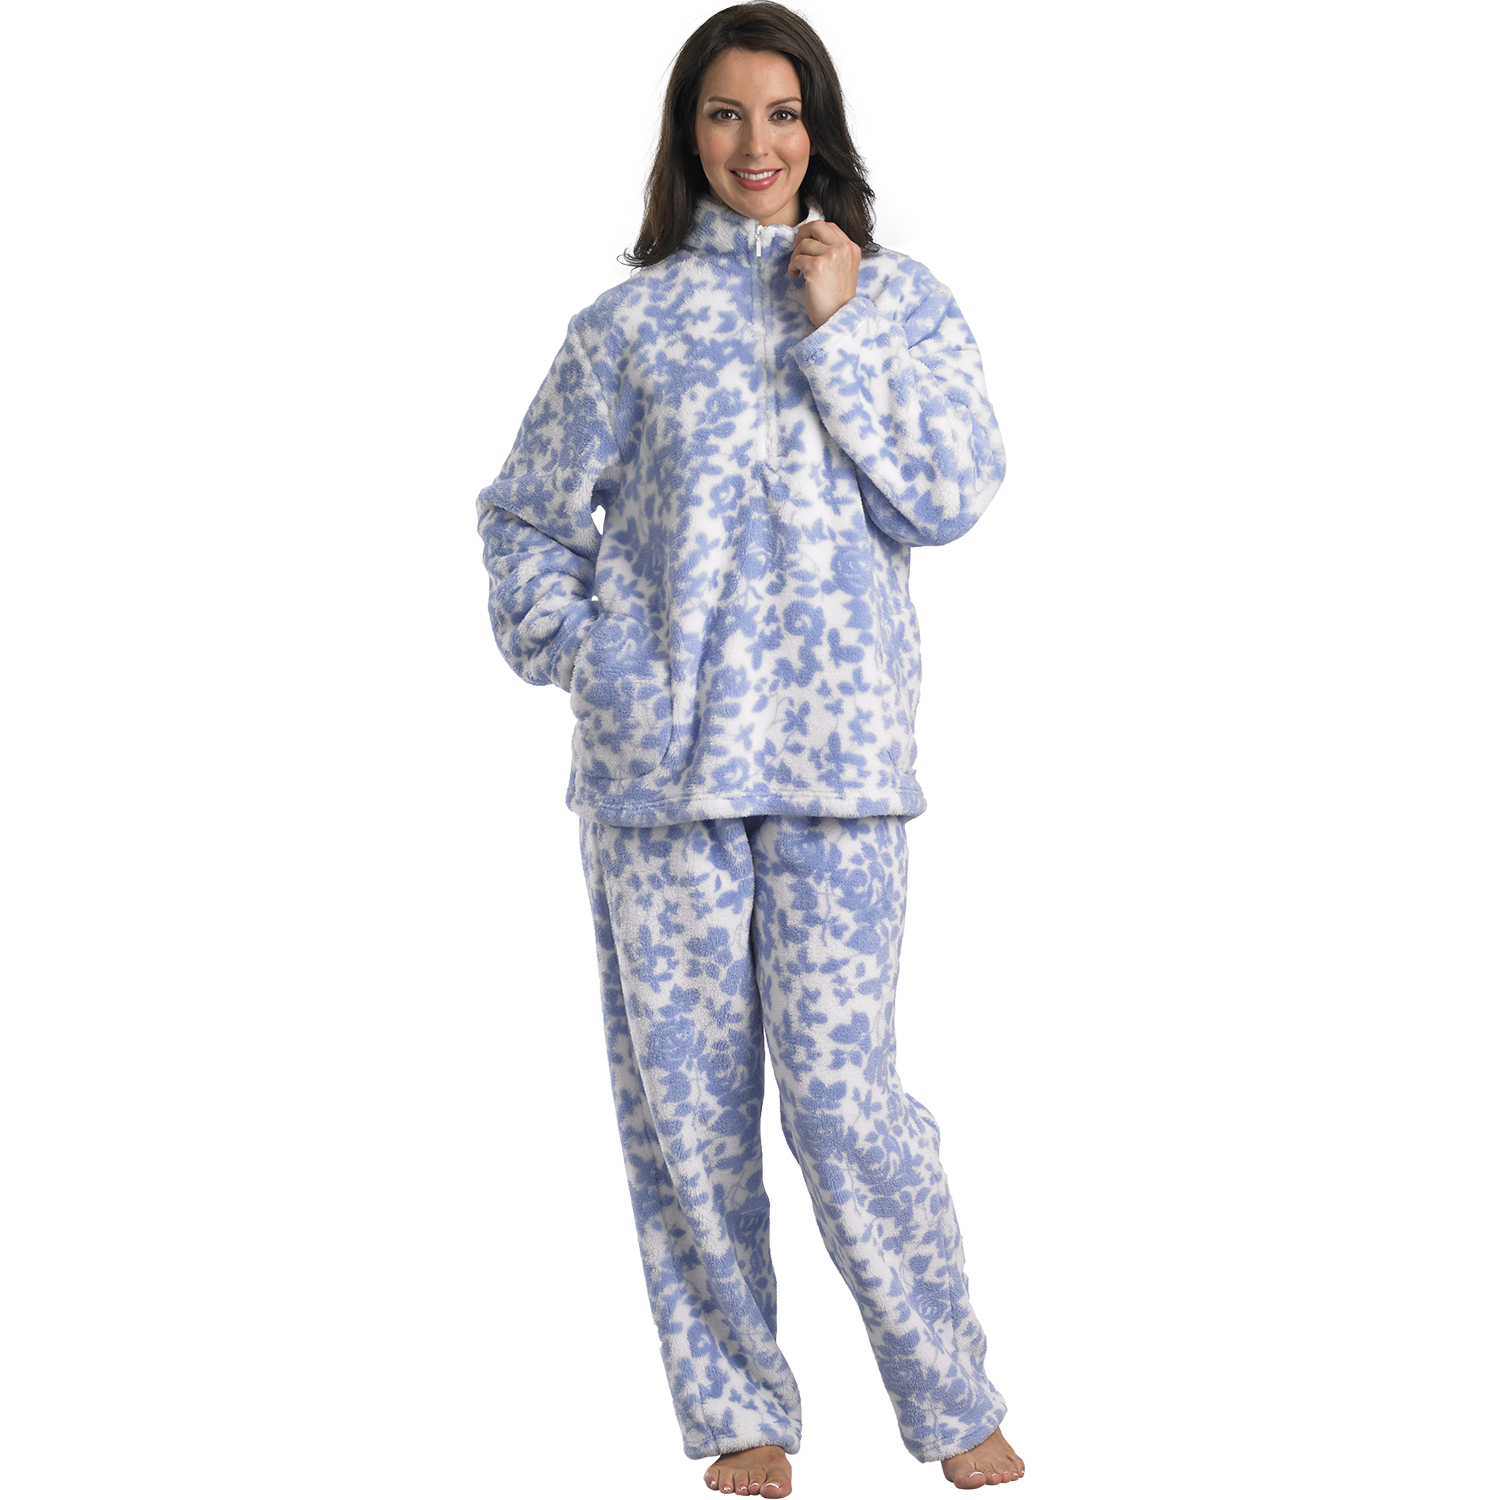 No wardrobe would be complete without a pair of Bonsoir womans pyjamas. Discover the full range of elegant and stylish women's pyjamas in a variety of colours and materials including Satin, Classic Cotton and Jersey.